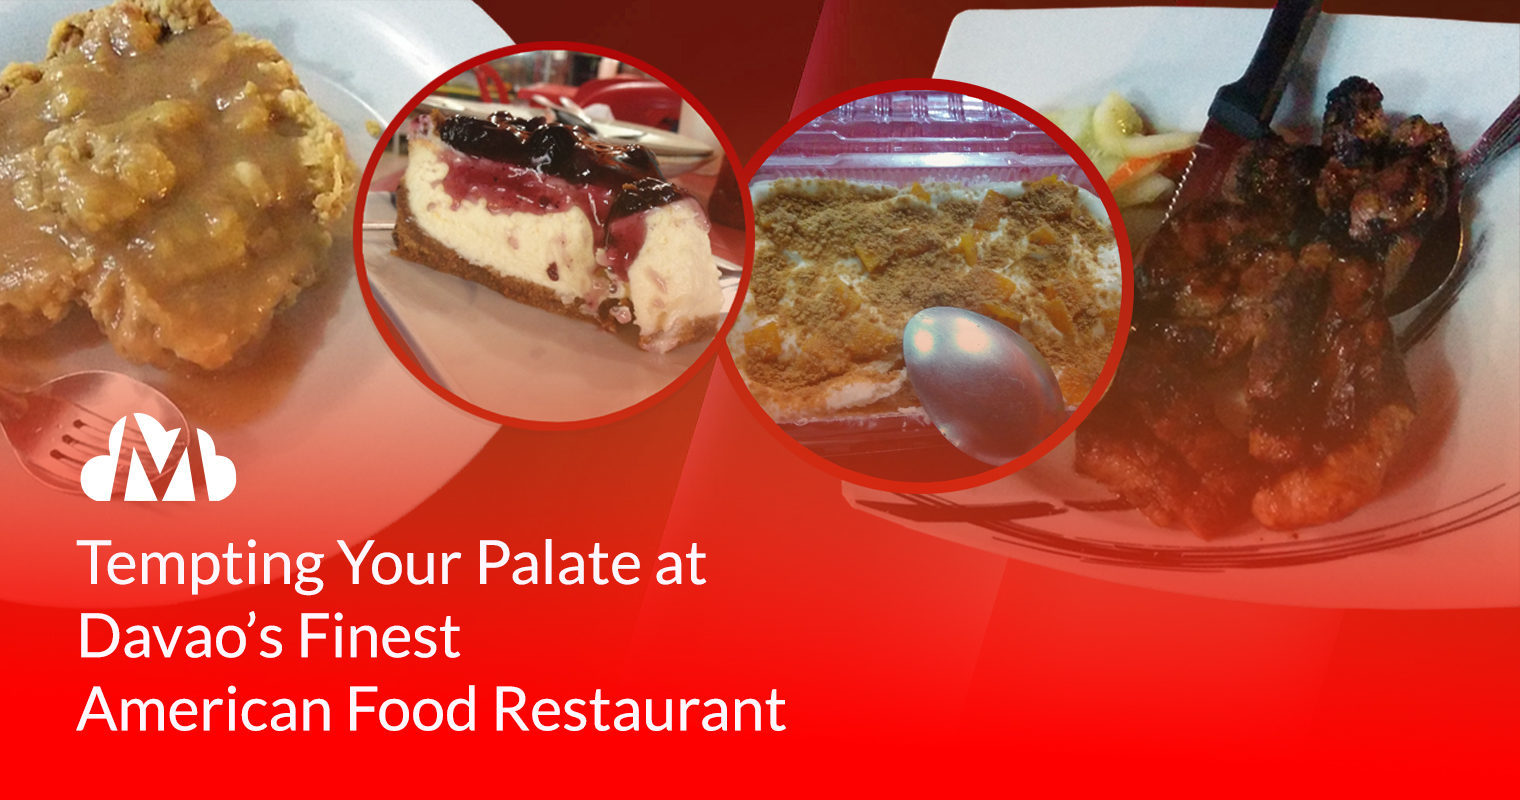 Tempting Your Palate at Davao's Finest American Food Restaurant